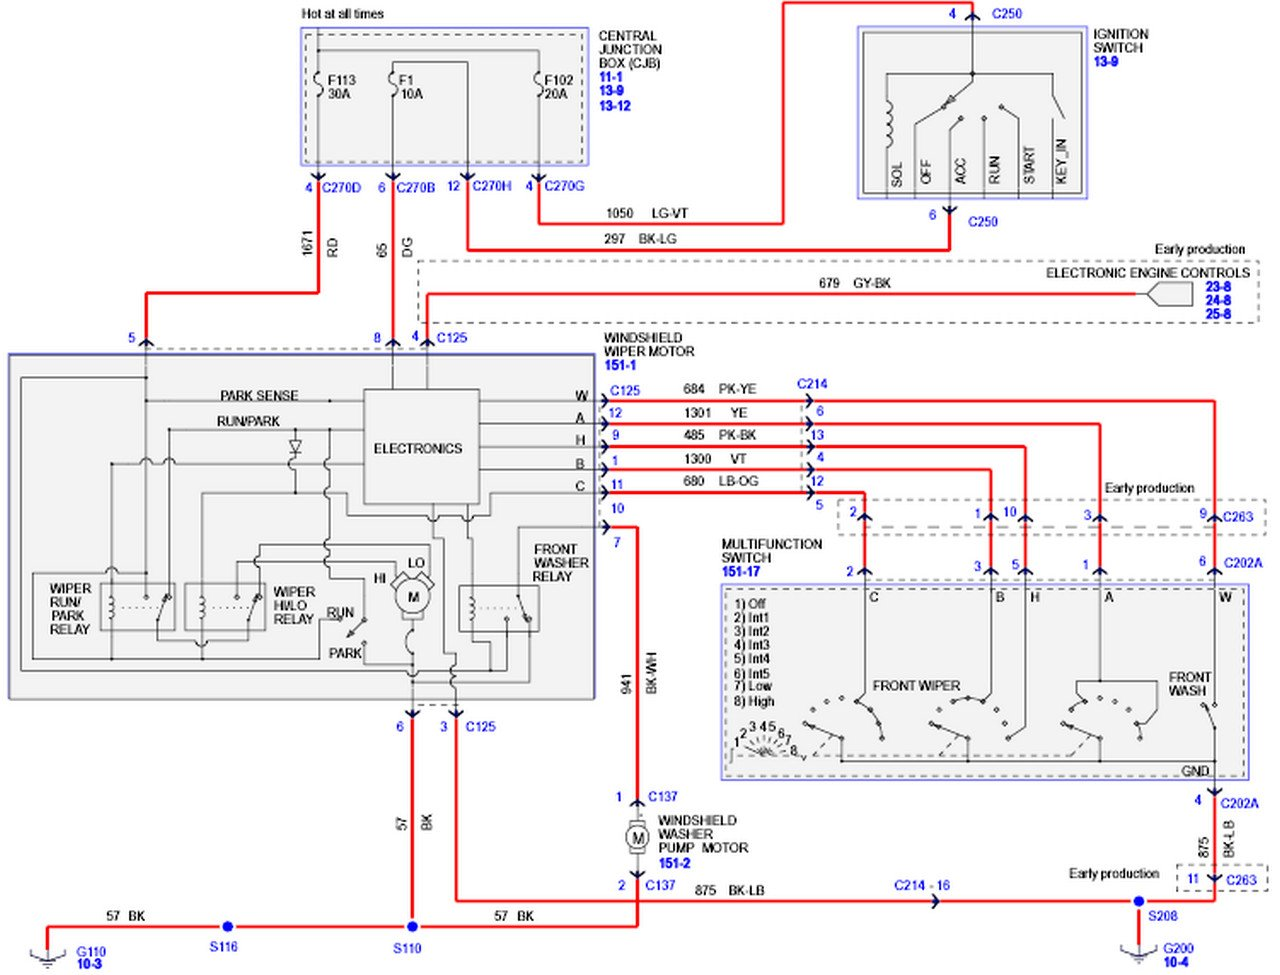 cab light wiring diagram cab wiring diagrams 2010 08 12 154203 05 f 150 wiper wiring diagrams cab light wiring diagram